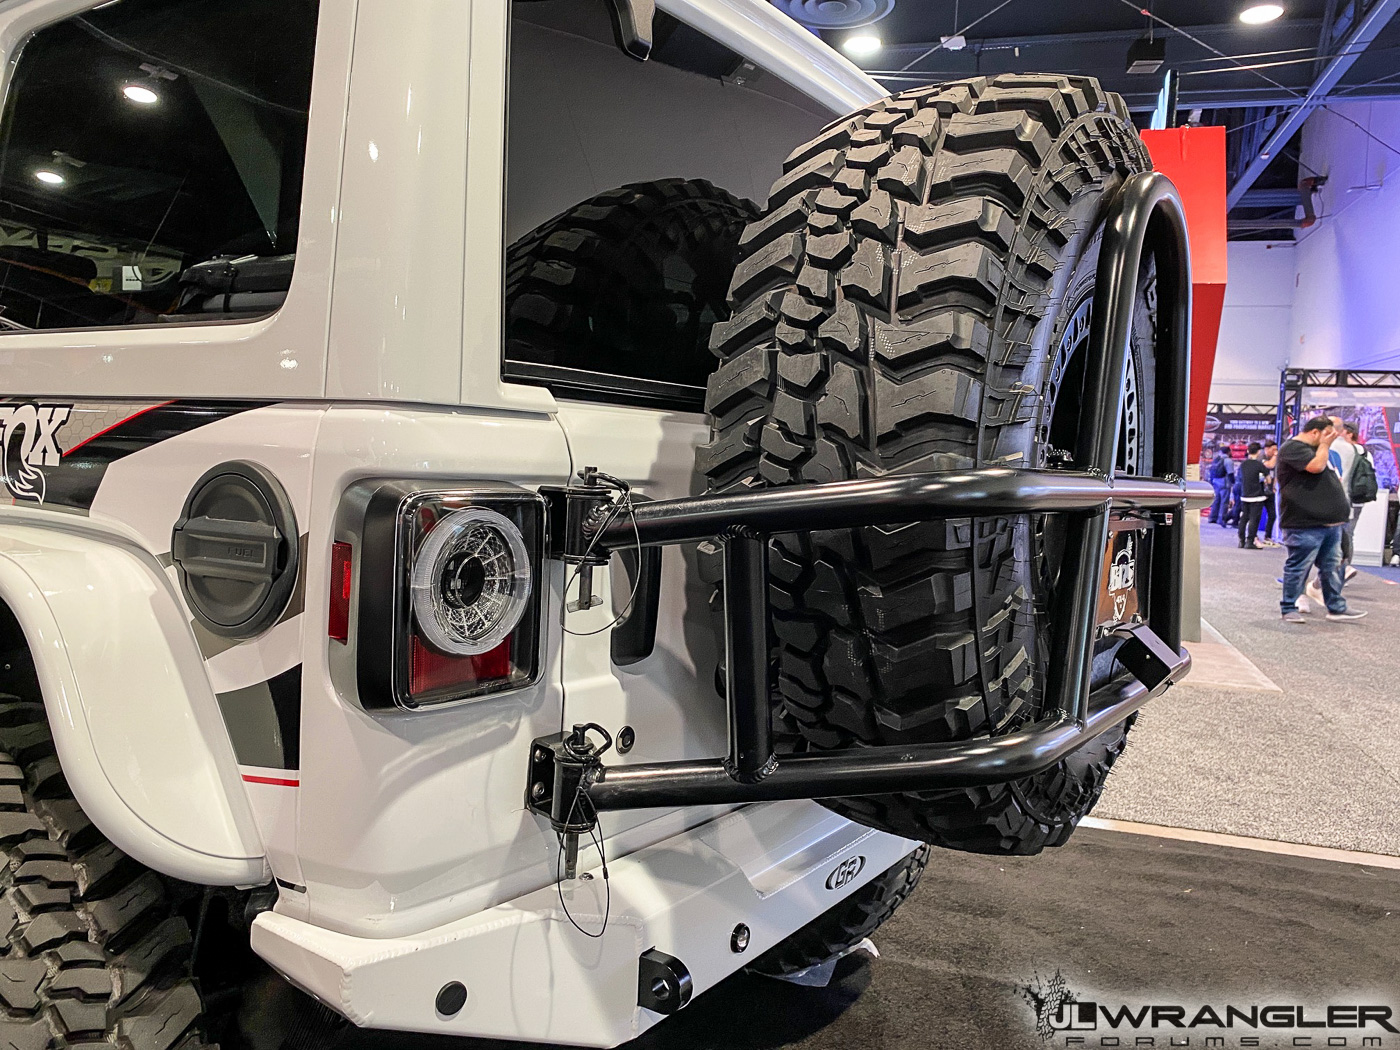 Spyder-JLU-Jeep-Wrangler-Build-SEMA-2019-17.jpg